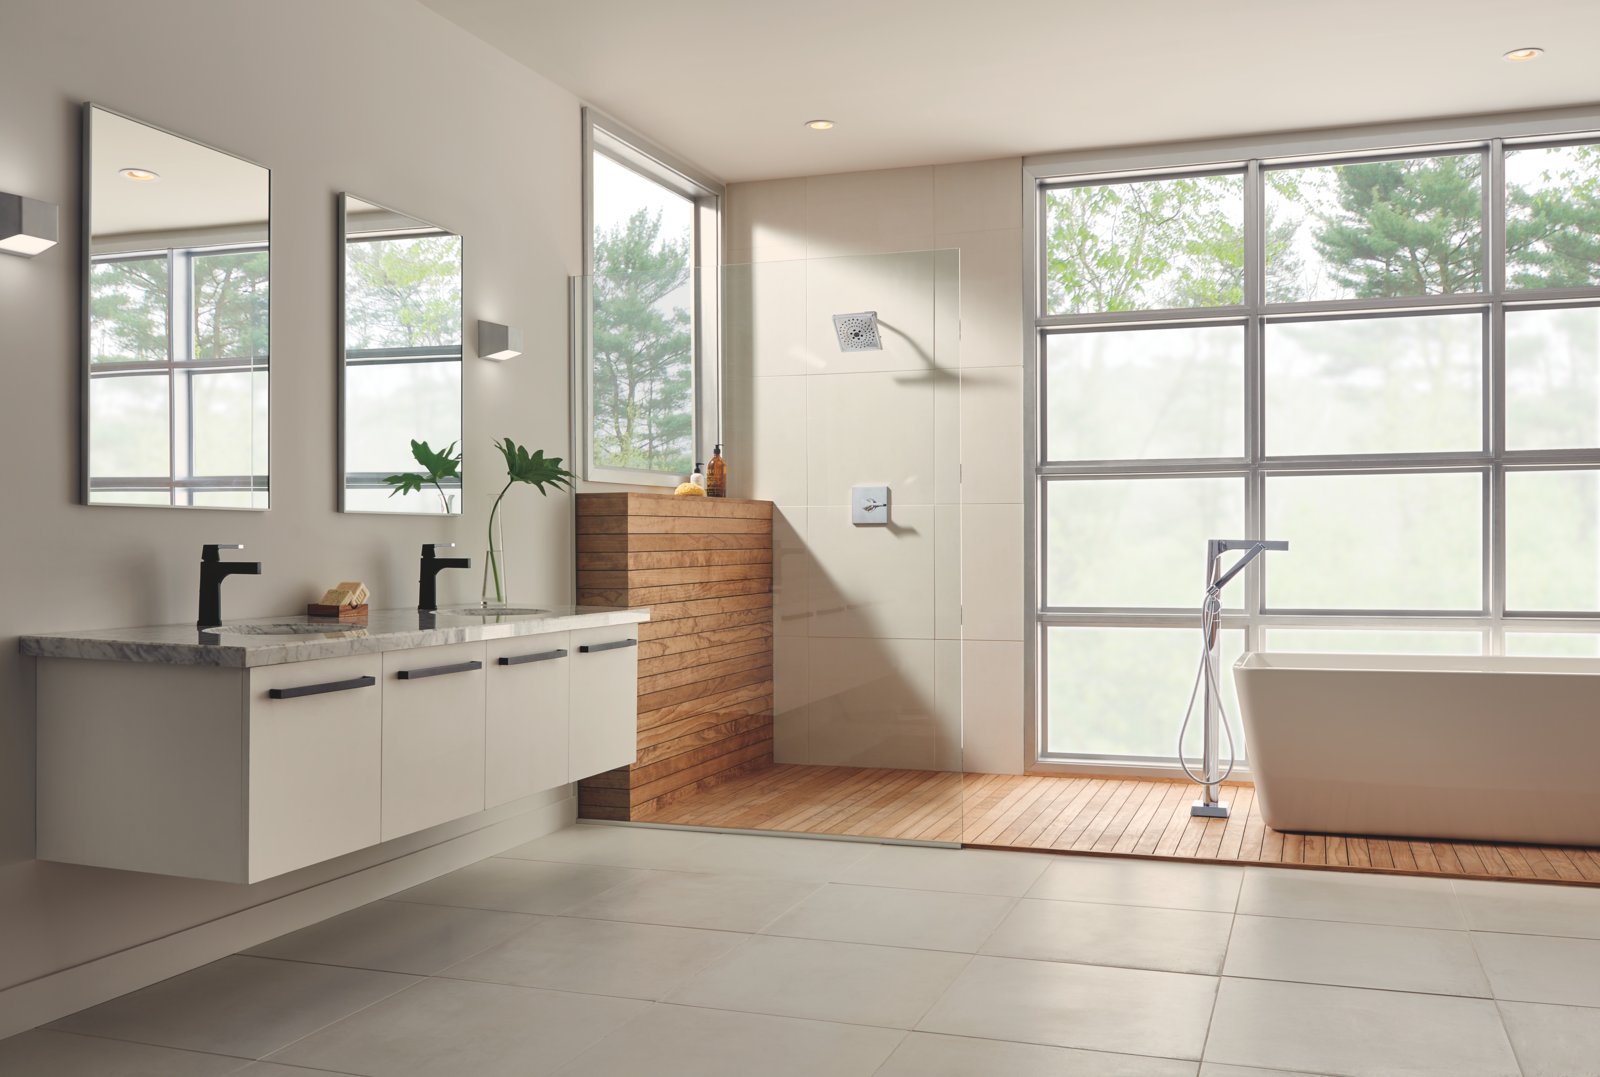 7 bathroom renovation ideas to rejuvenate your space dwell for Dwell bathroom designs